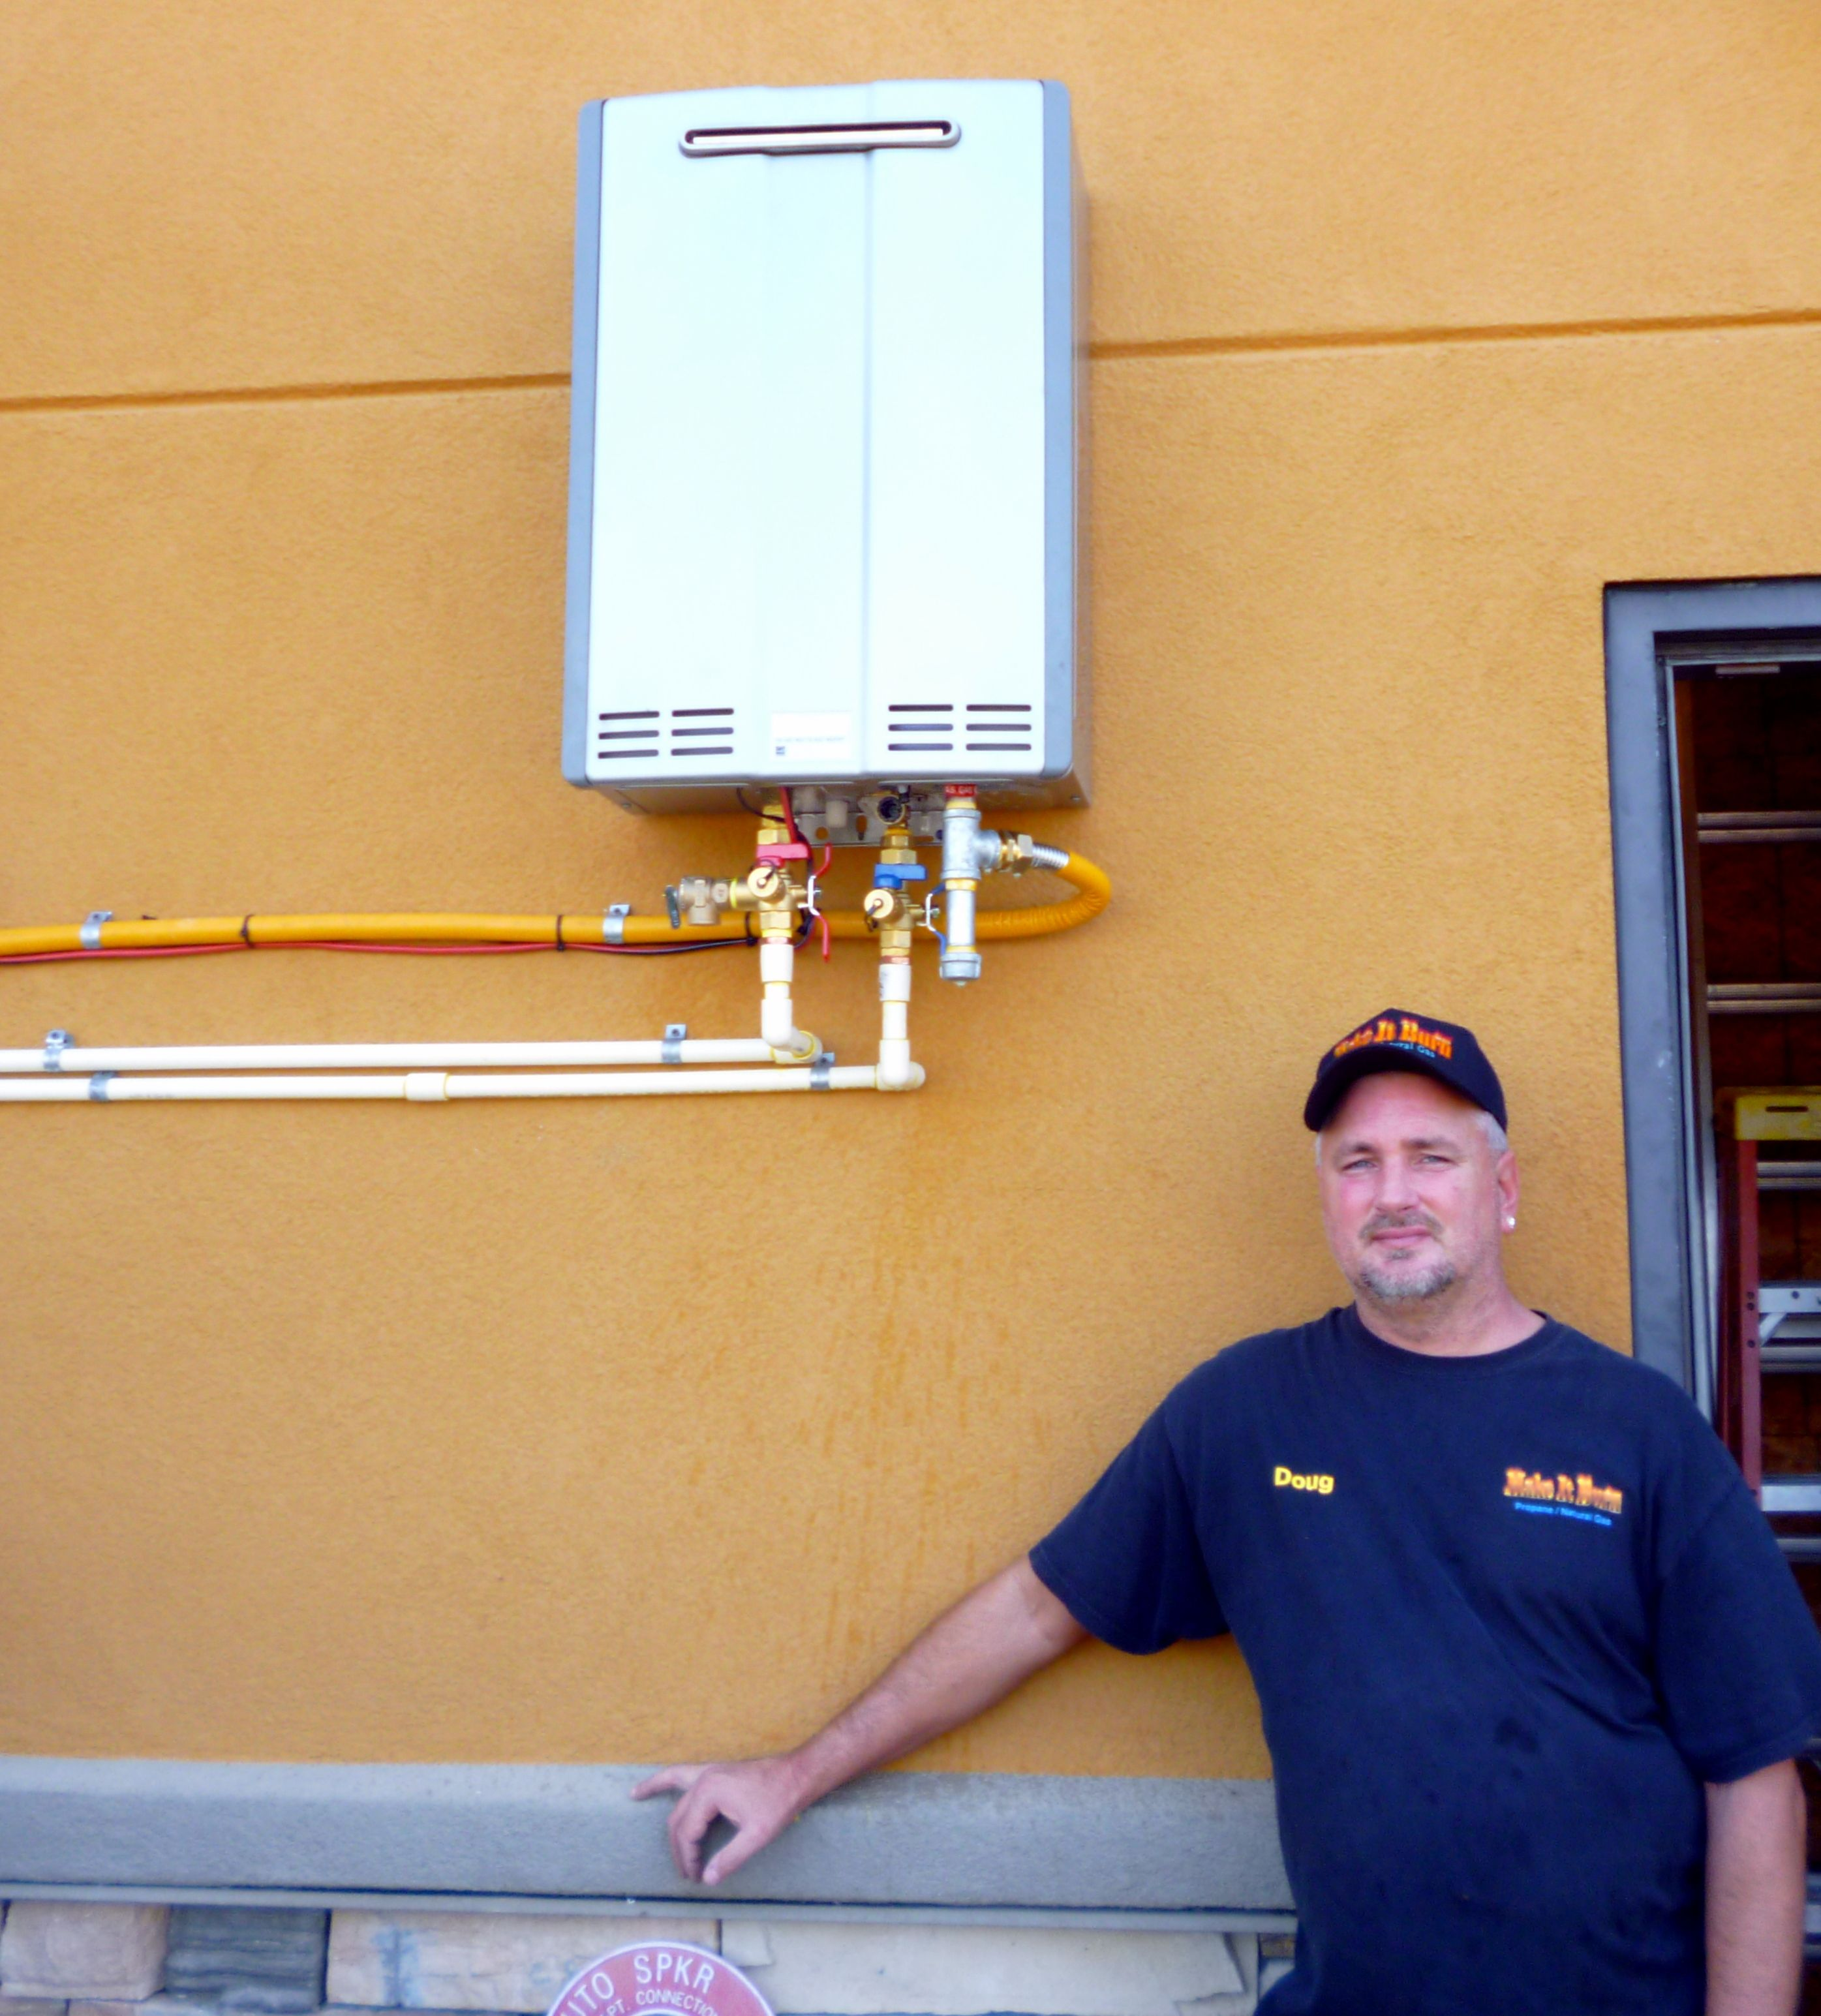 Pros and cons of gas tankless water heaters - Gas Water Heater Heat Pump On Tankless Water Heaters Pros And Cons